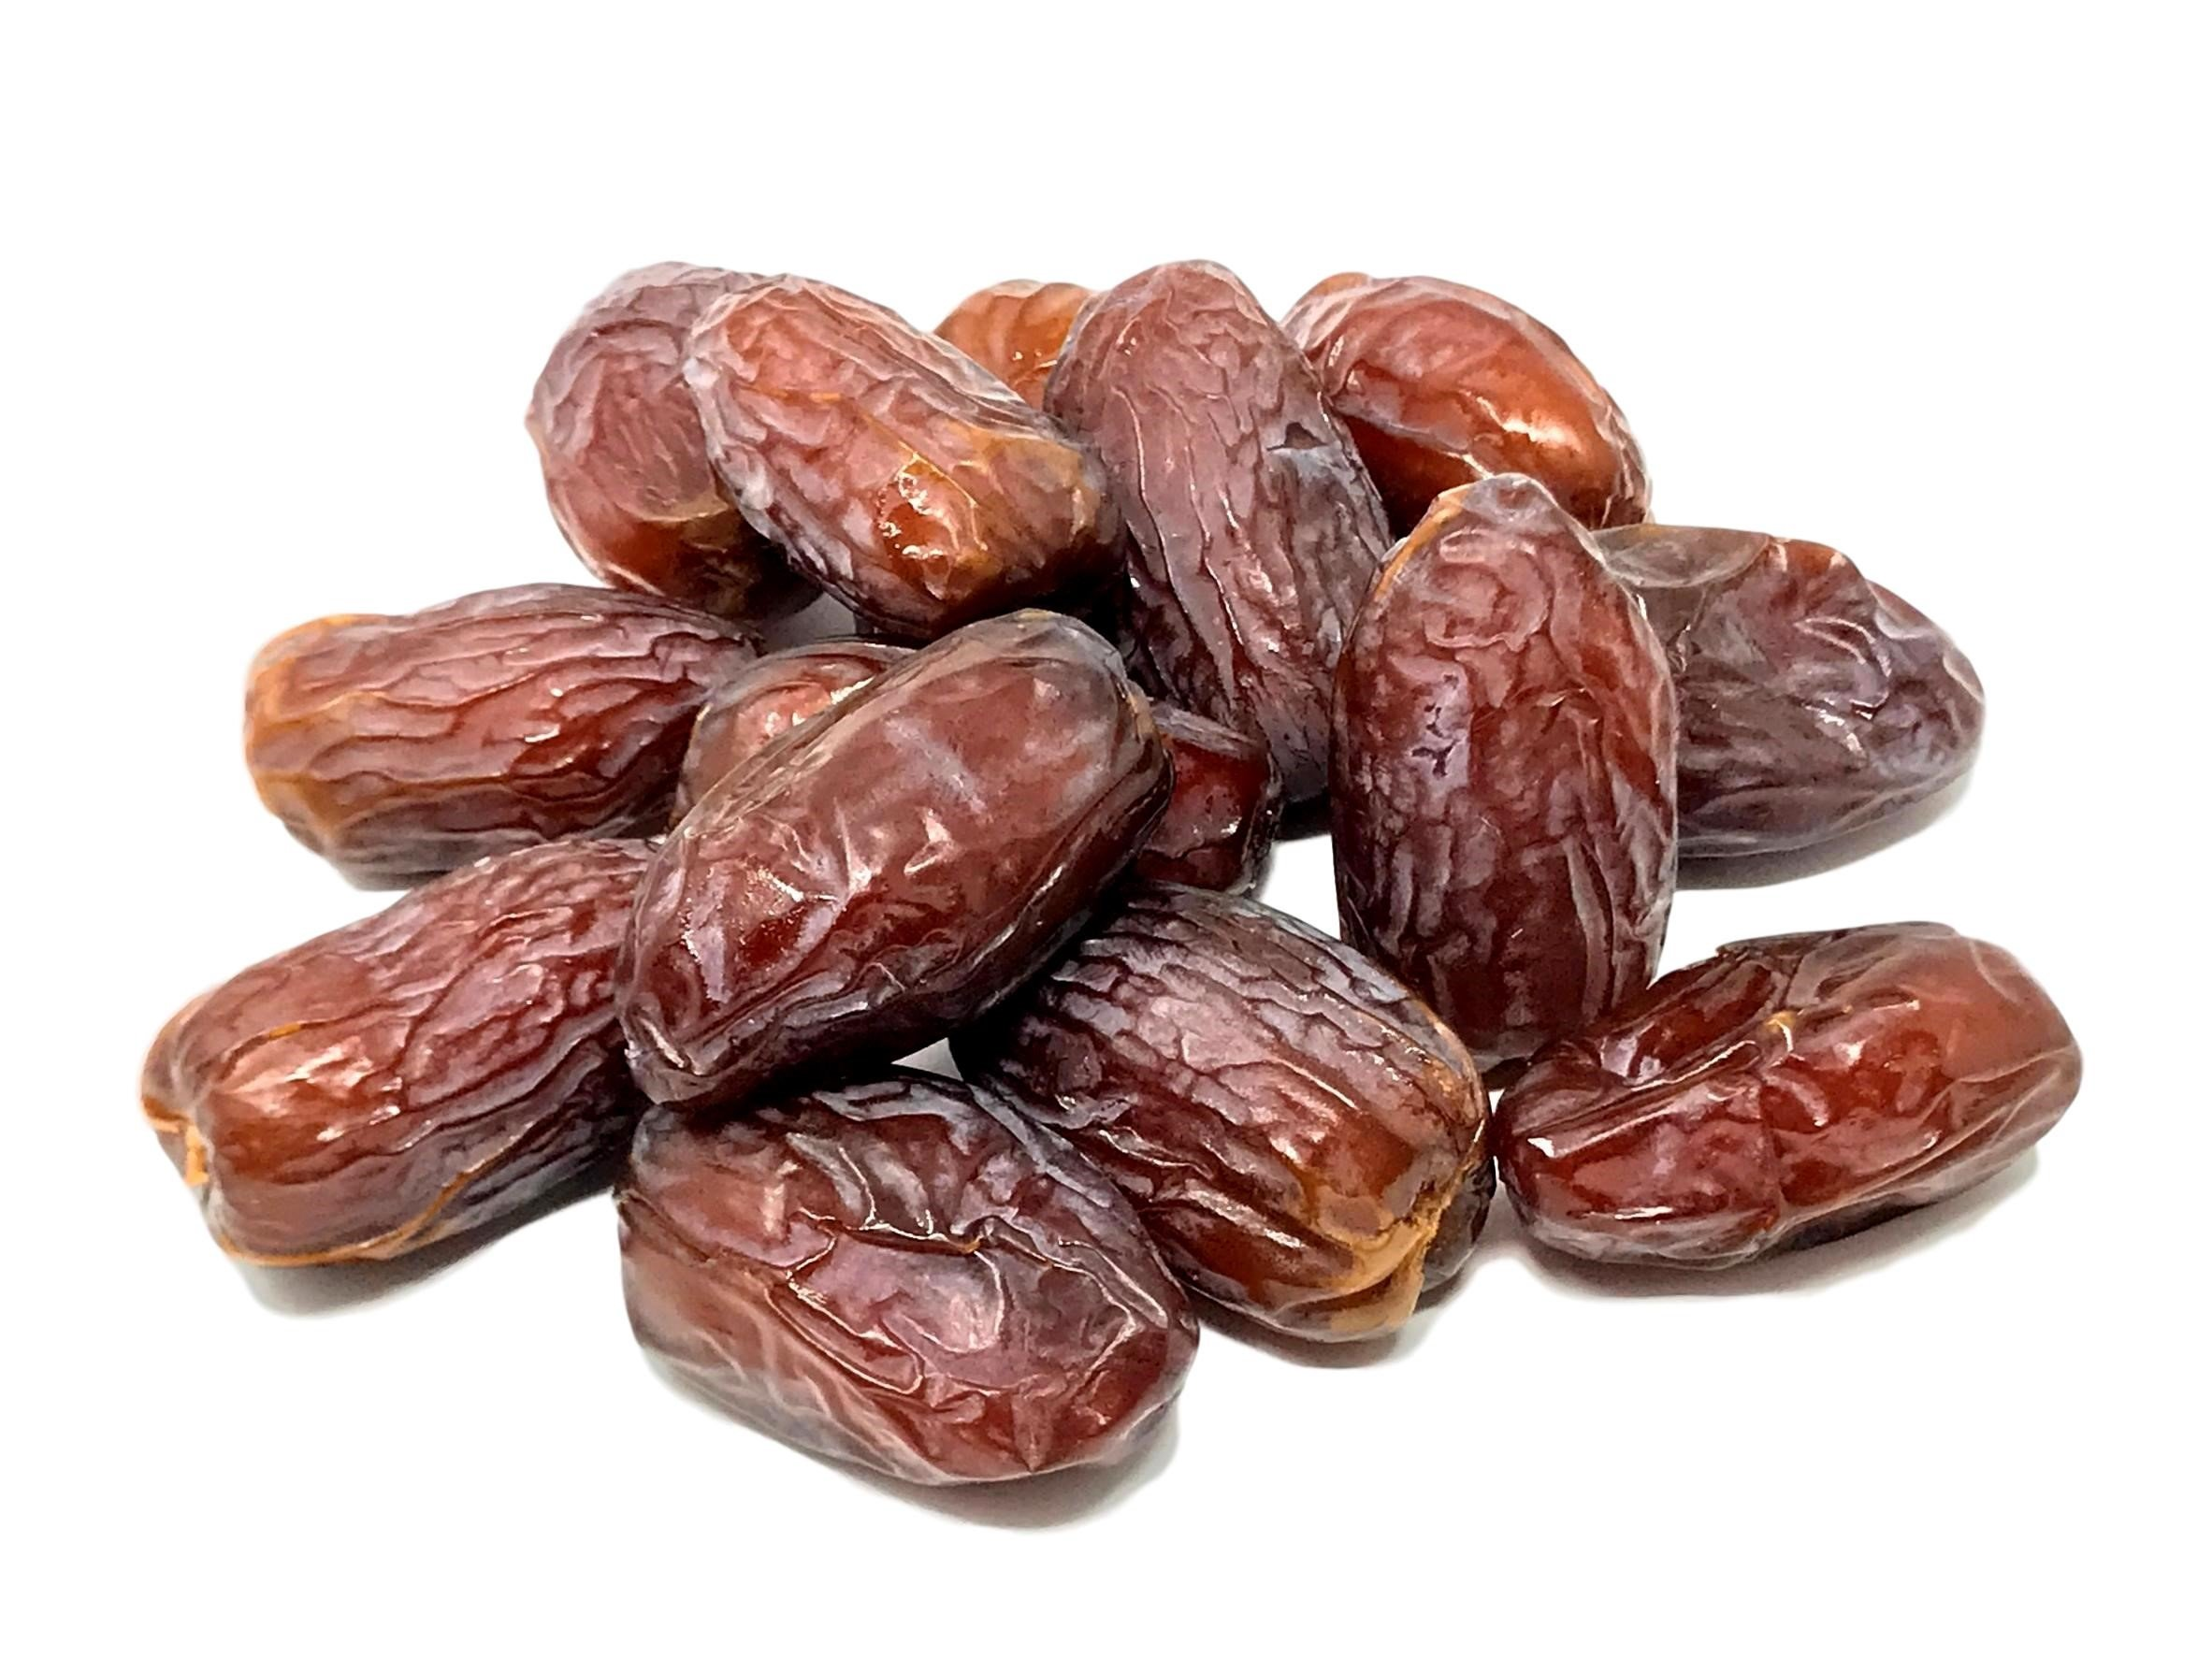 NUTS U.S. - Organic California Medjool Dates (1 LB)